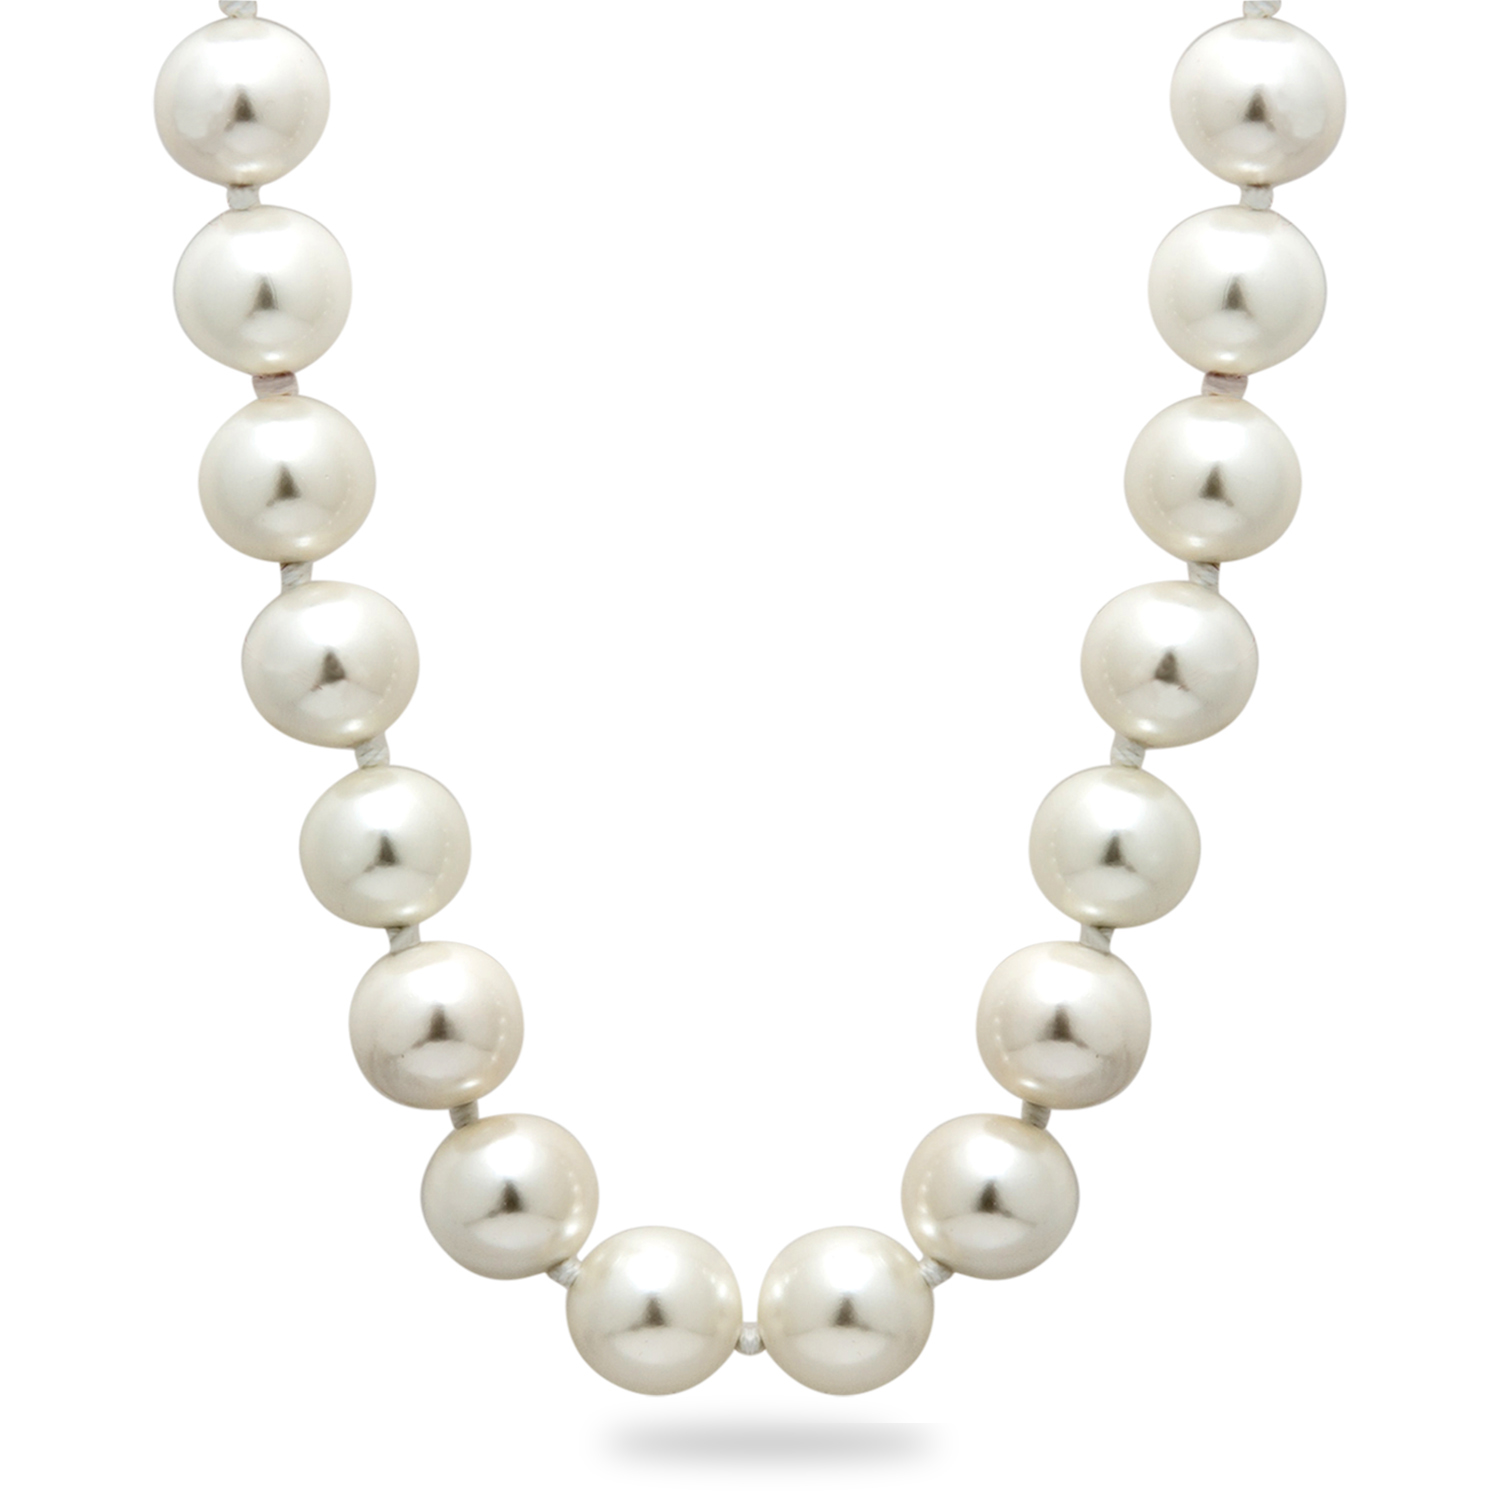 Polished White Shell Bead Hand Knotted Pearl Necklace 36 in.